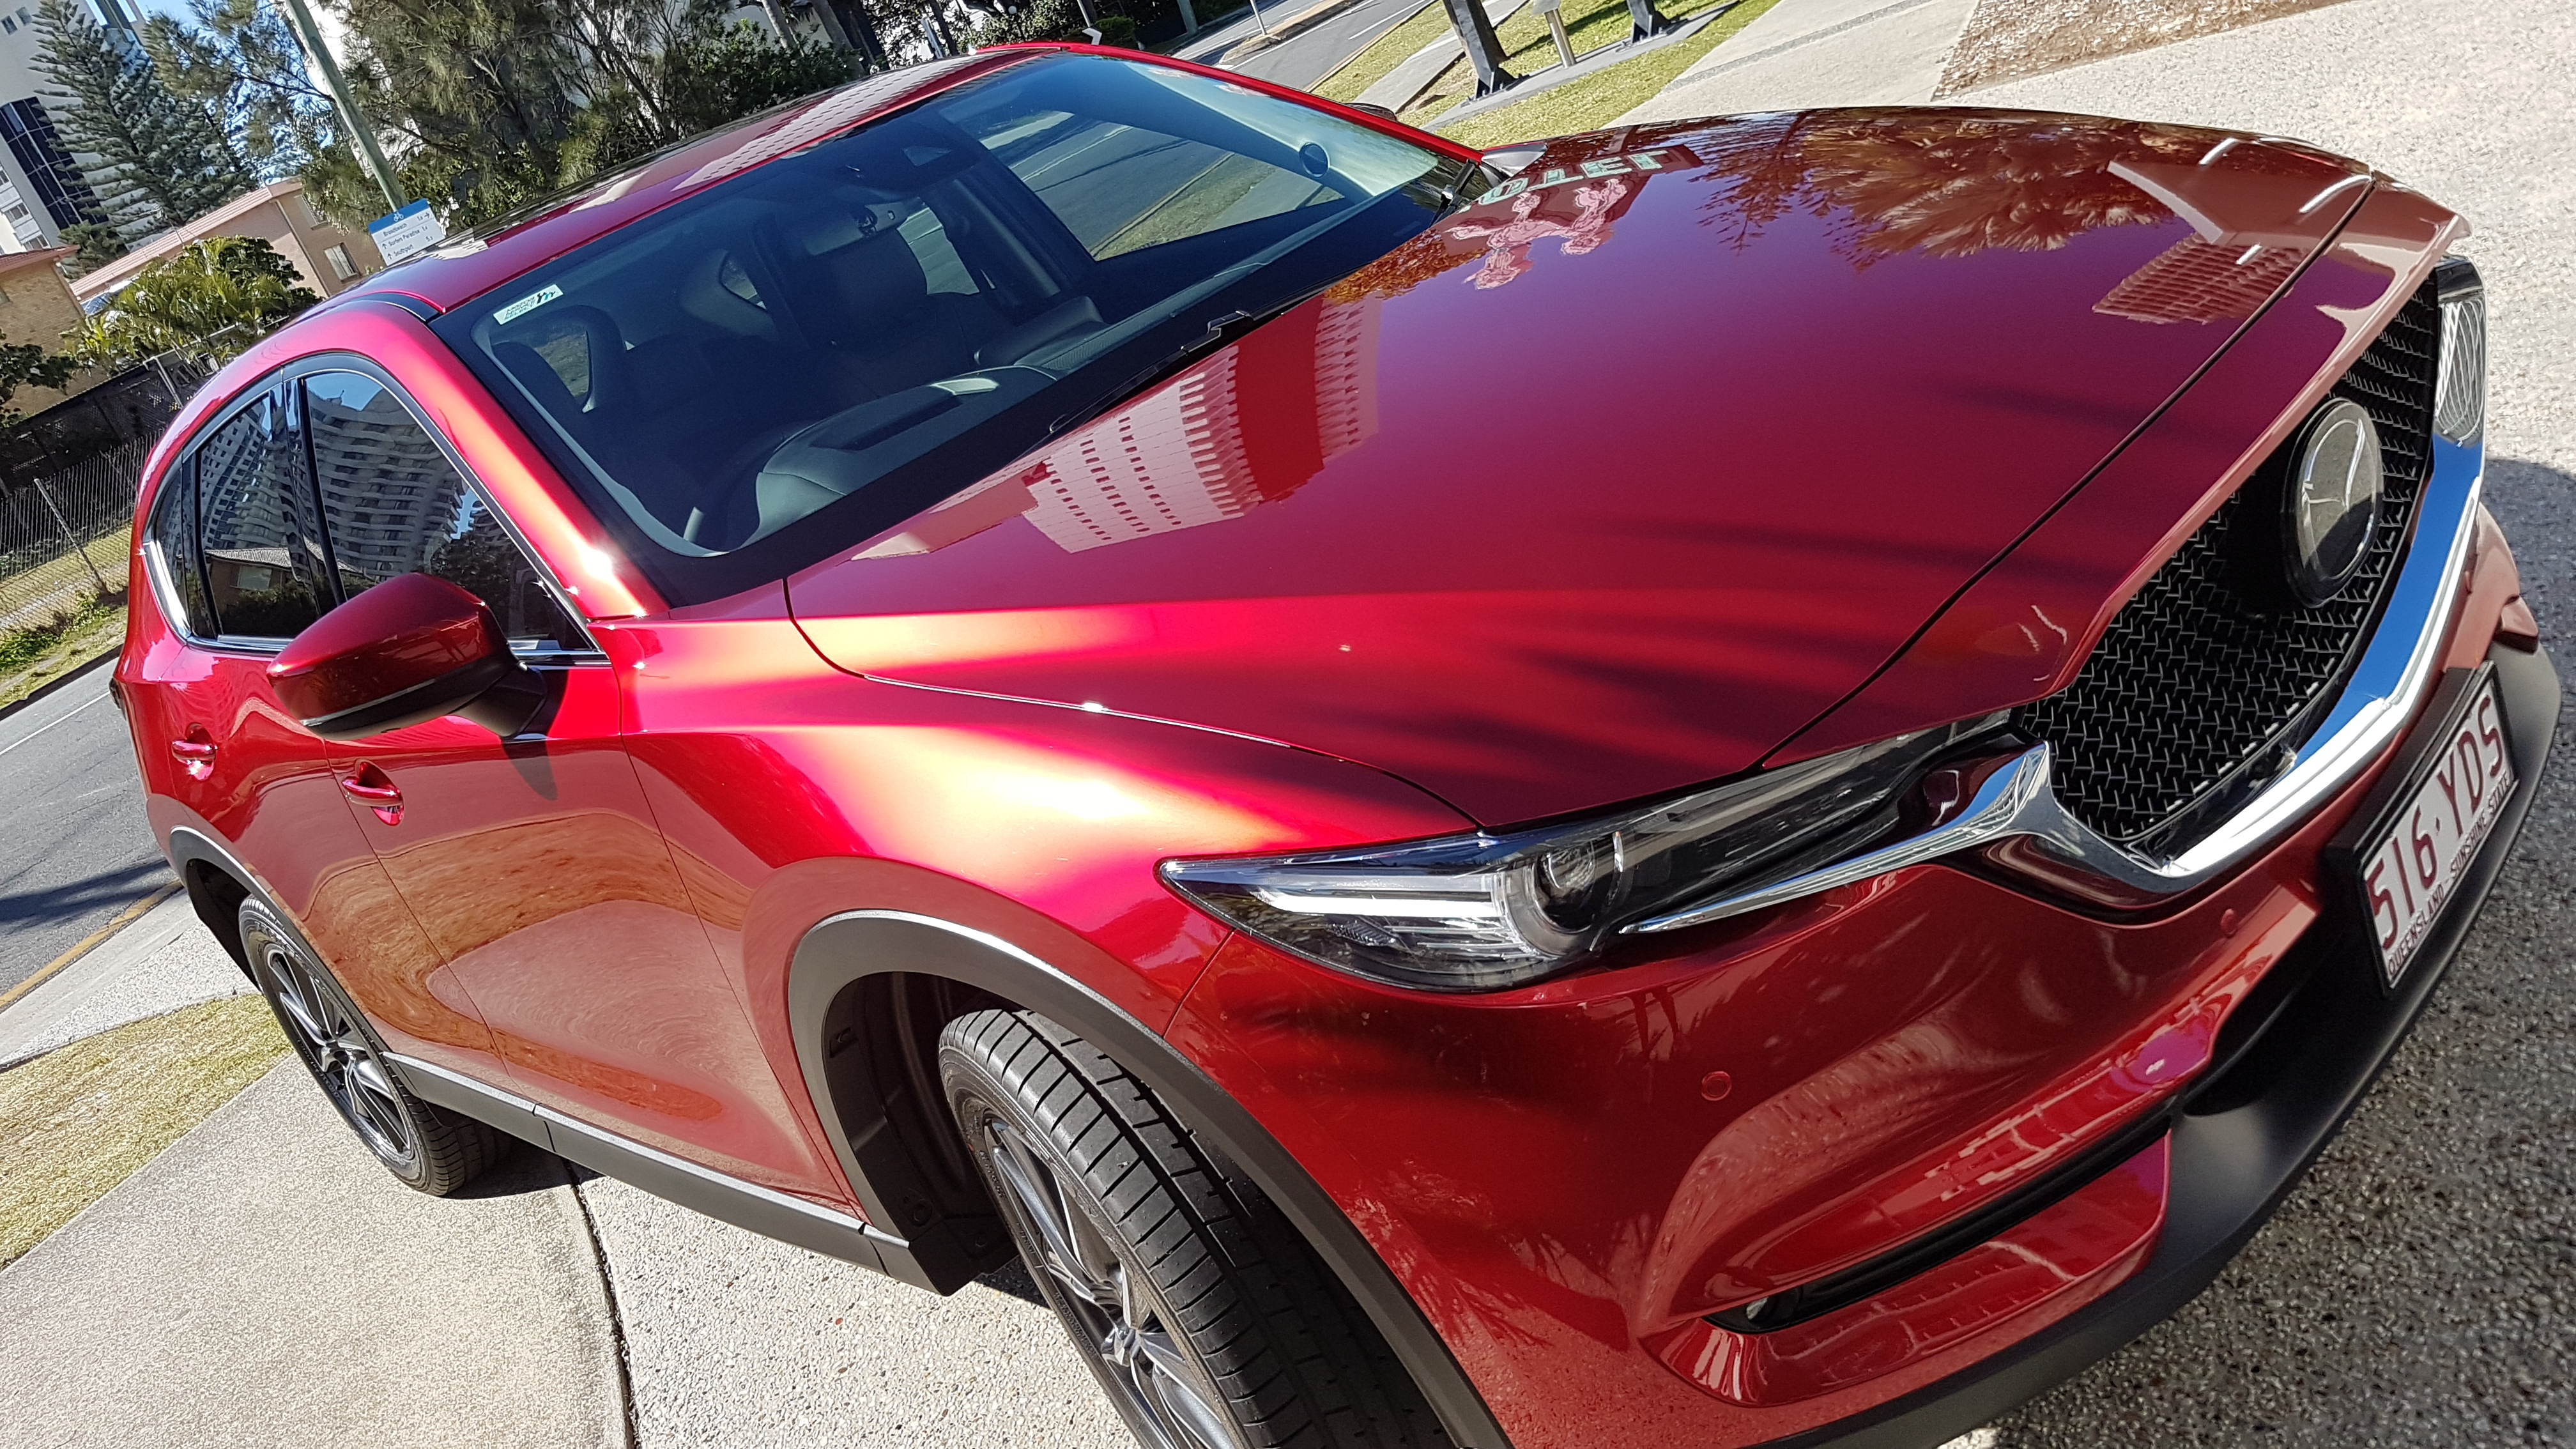 Allcar Detailing and Protective Coatings